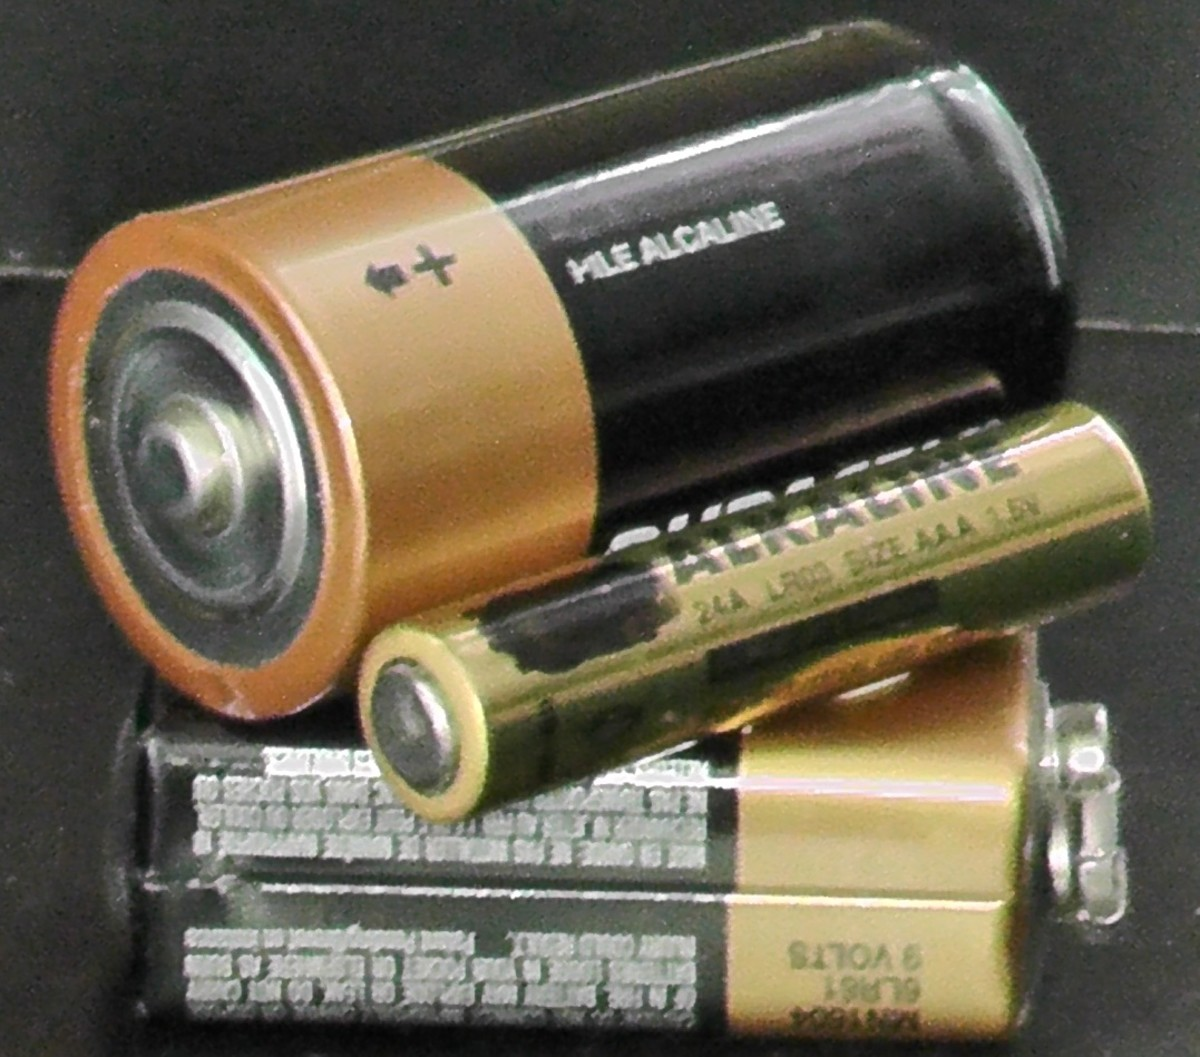 Whenever possible, use batteries instead of plugging a device into the wall socket.